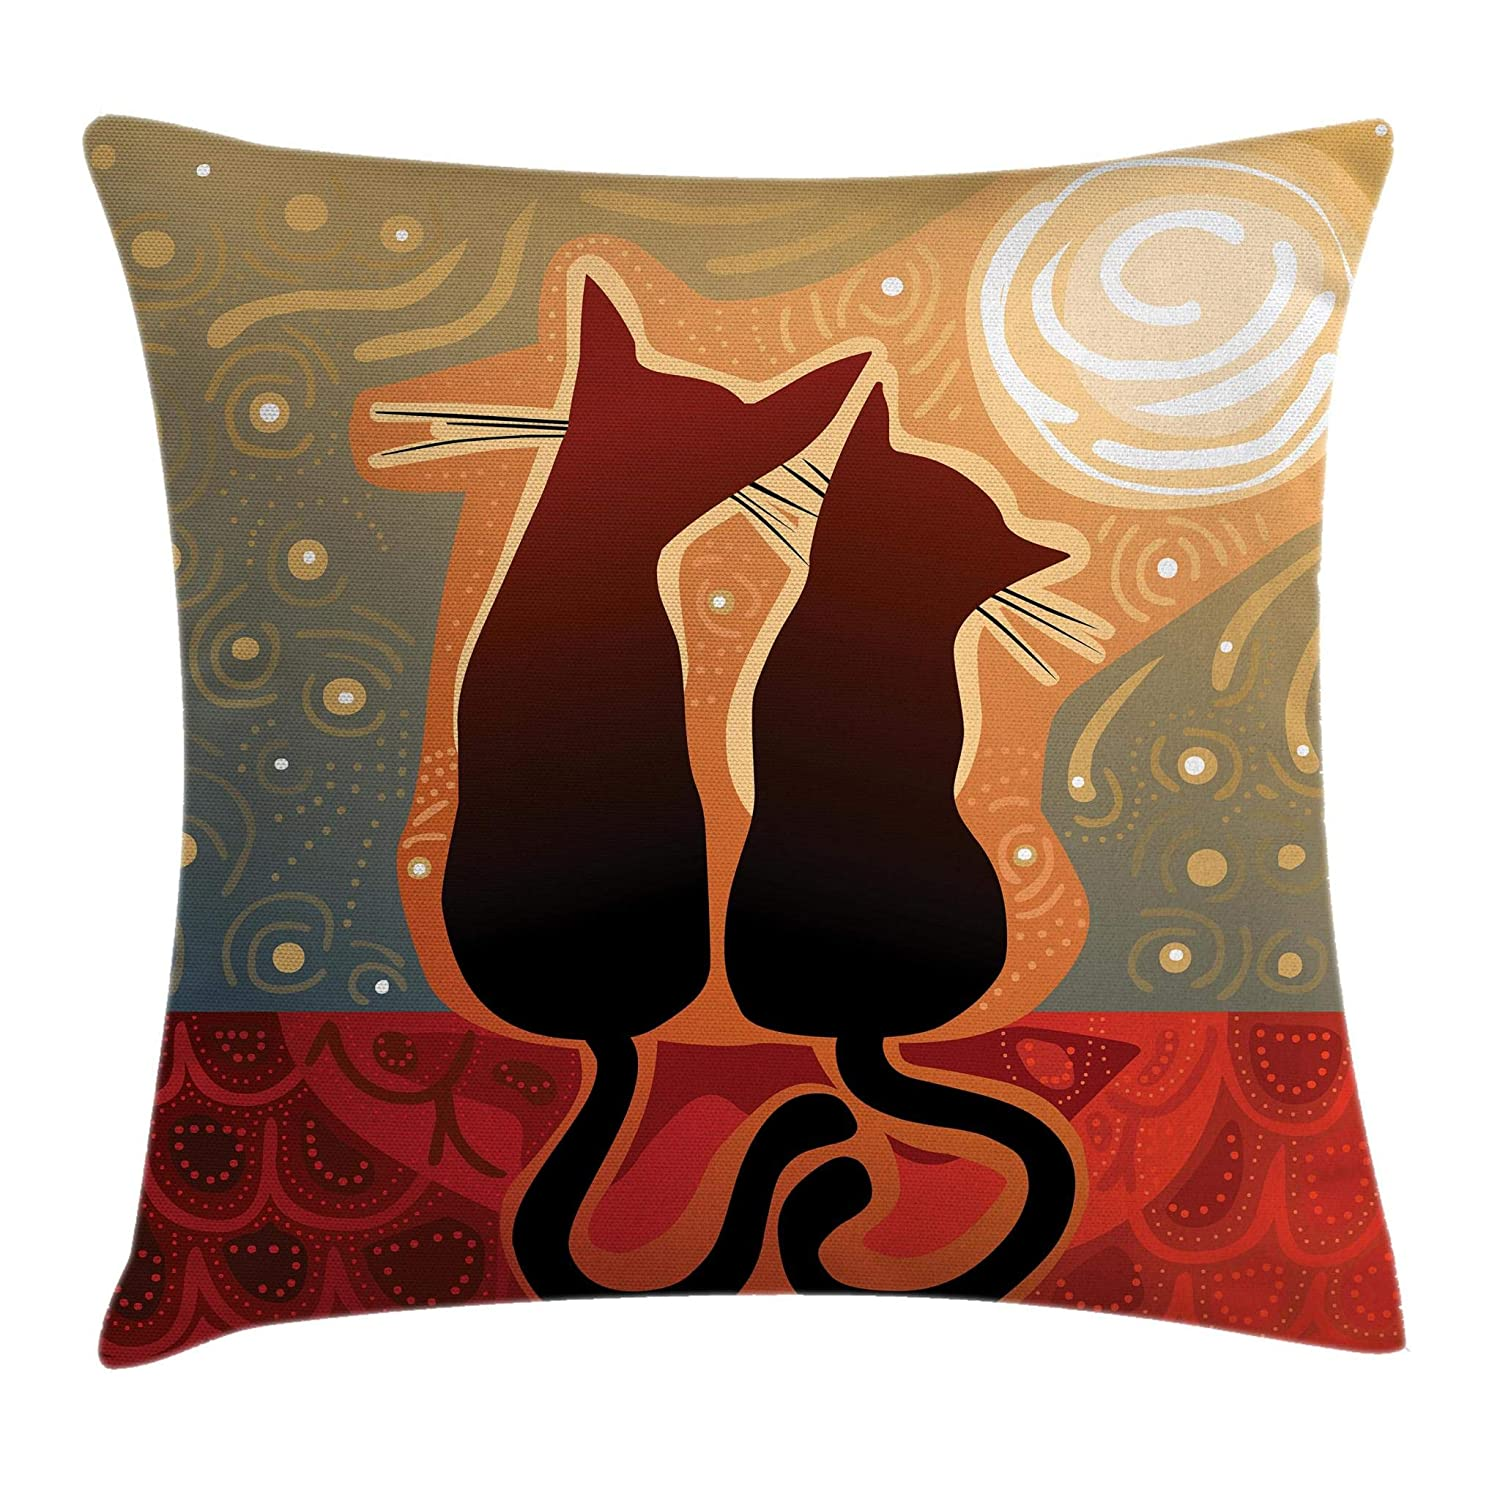 """Ambesonne Animal Throw Pillow Cushion Cover, Female and Male Cats in Love Watching Moon Luna on Starry Sky Print, Decorative Square Accent Pillow Case, 20"""" X 20"""", Green Orange"""